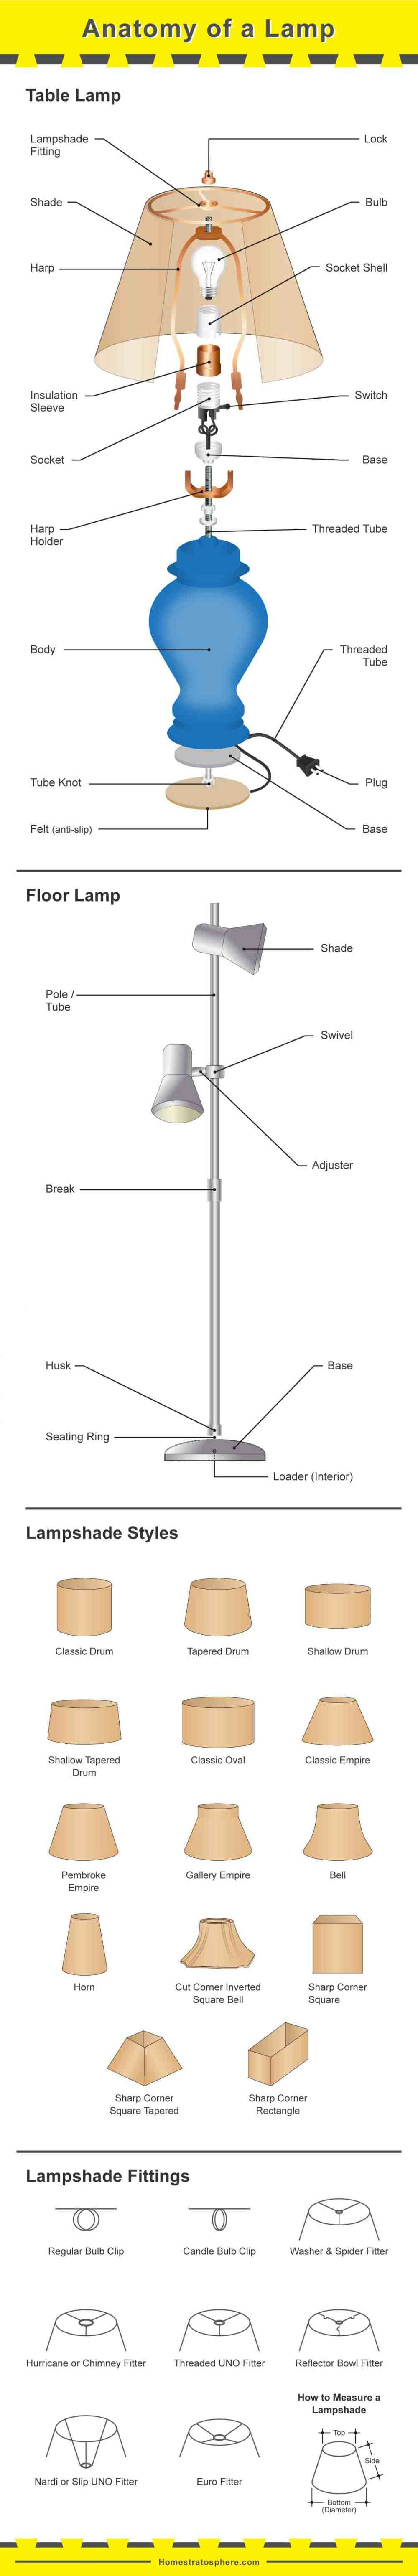 medium resolution of southwestern table lamps lamp light socket parts diagram wiring diagram of parts of a lamp wiring